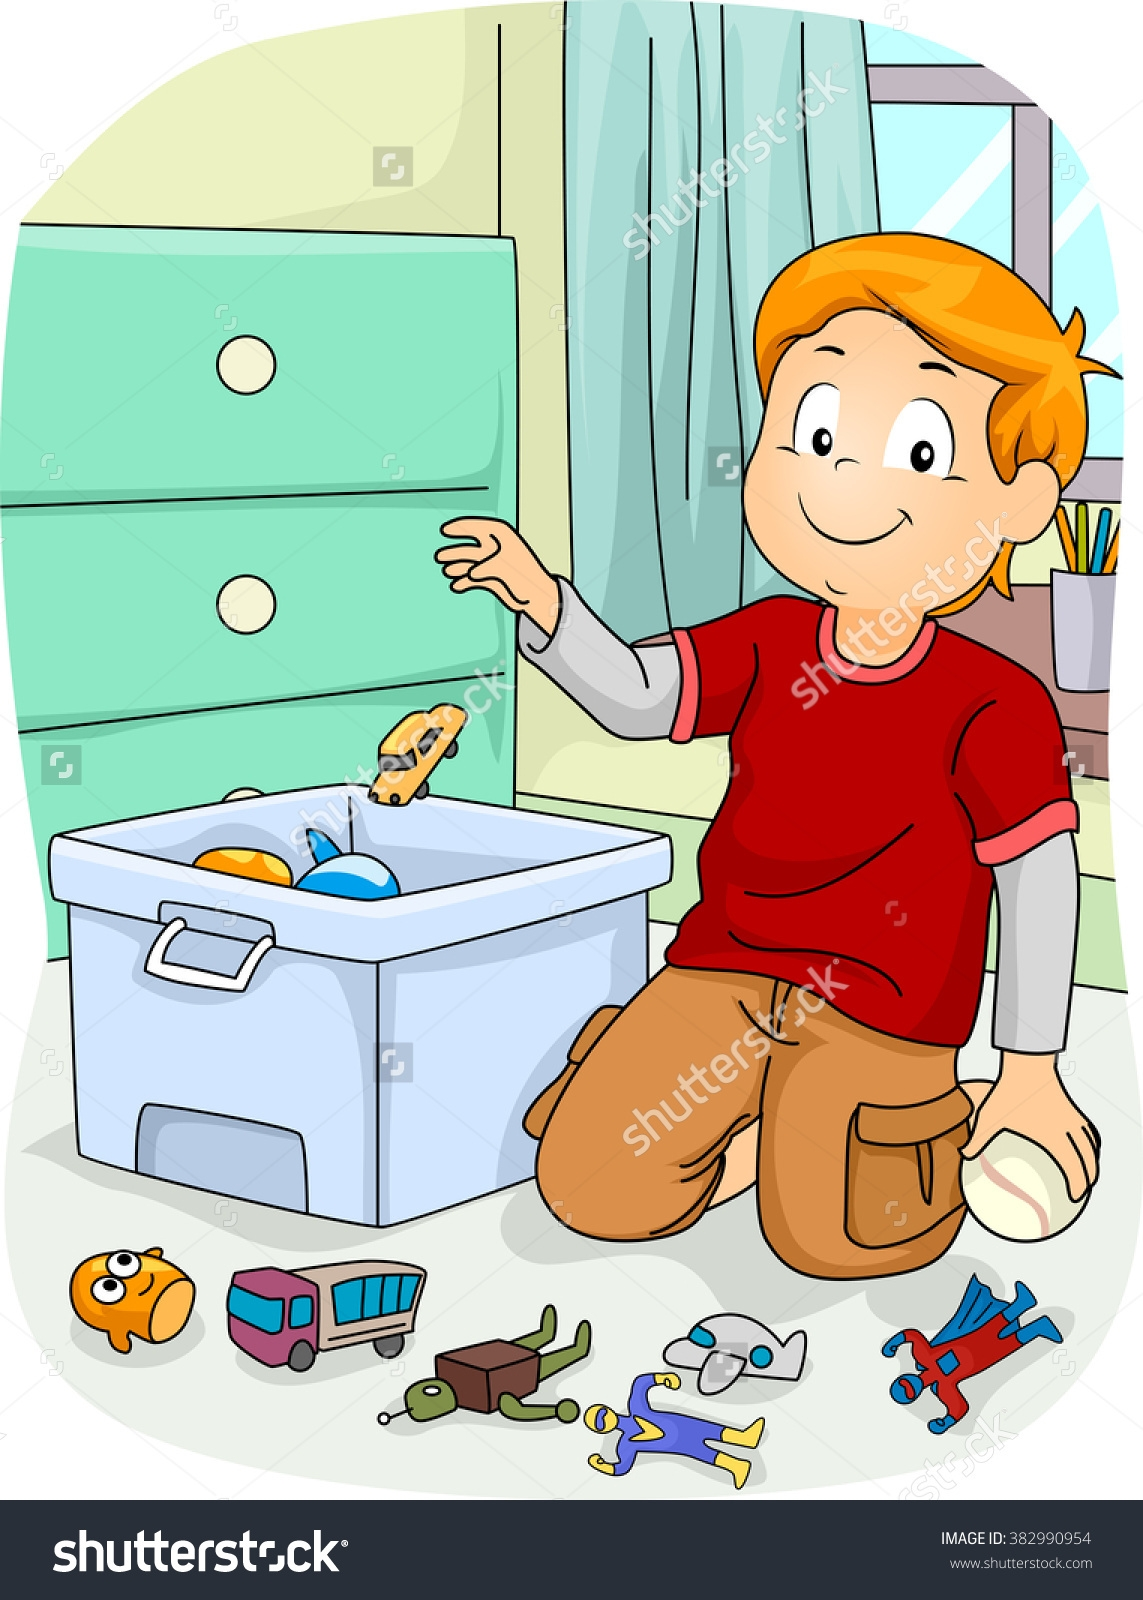 Boy clean up toys clipart clip art black and white library Clean up toys clipart Best of boy picking up toys clipart Clipground ... clip art black and white library